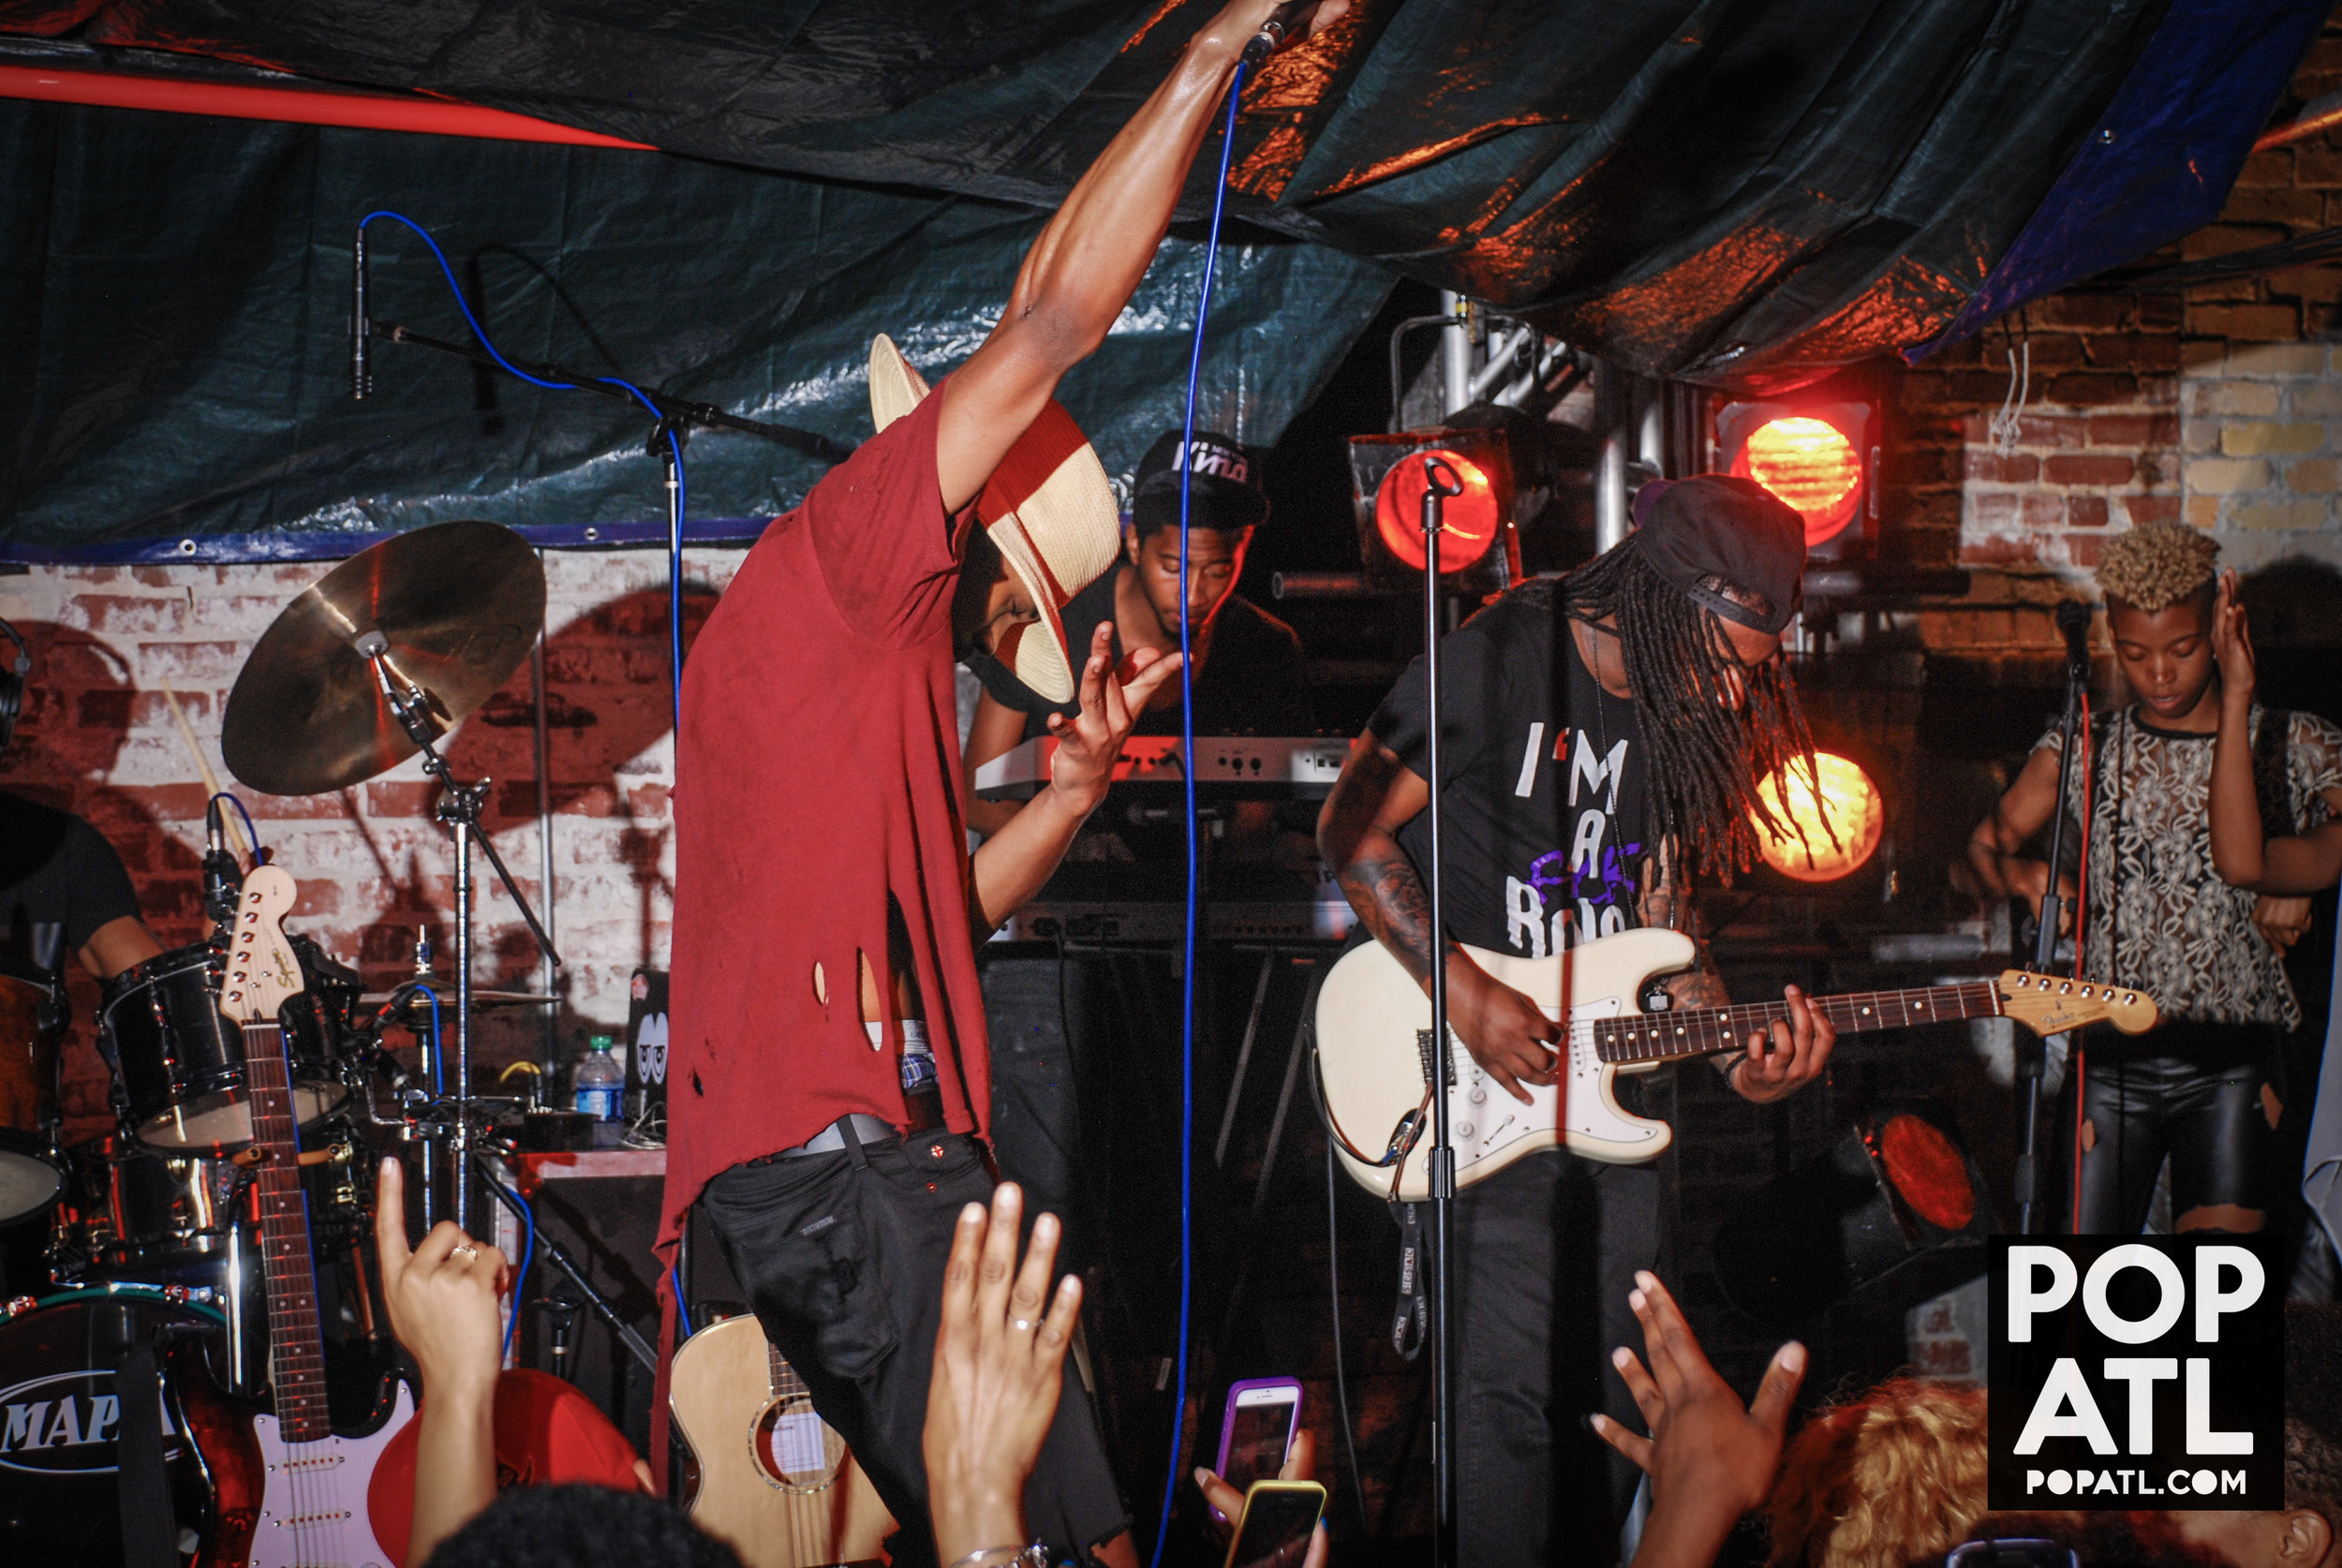 RAURY-RAURFEST-AT-POP-ATL-159.jpg